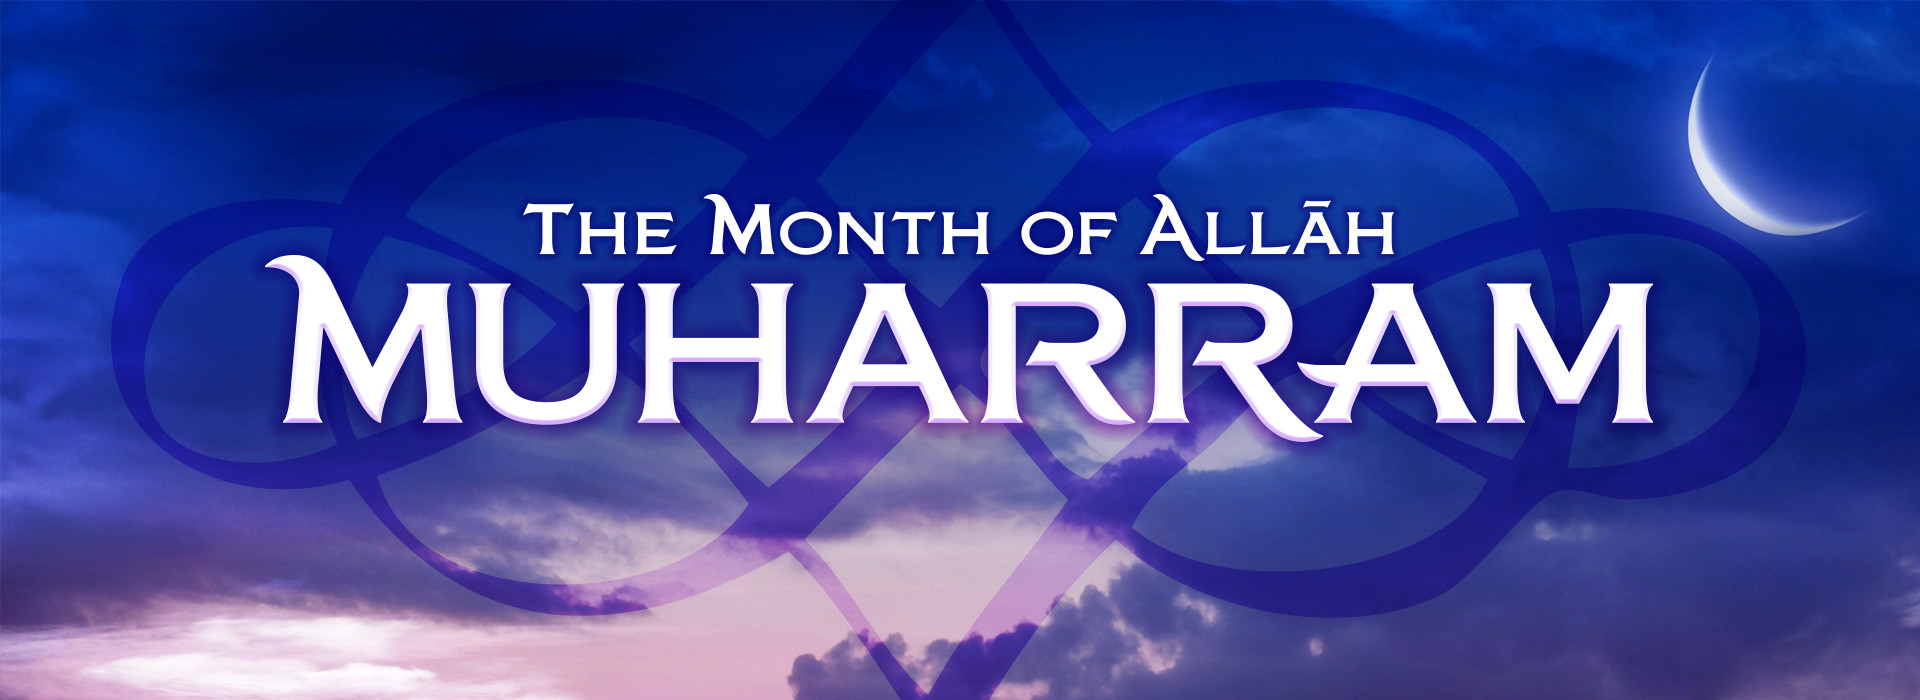 5 Ways to Make the Most of Muharram: The Month of Allah